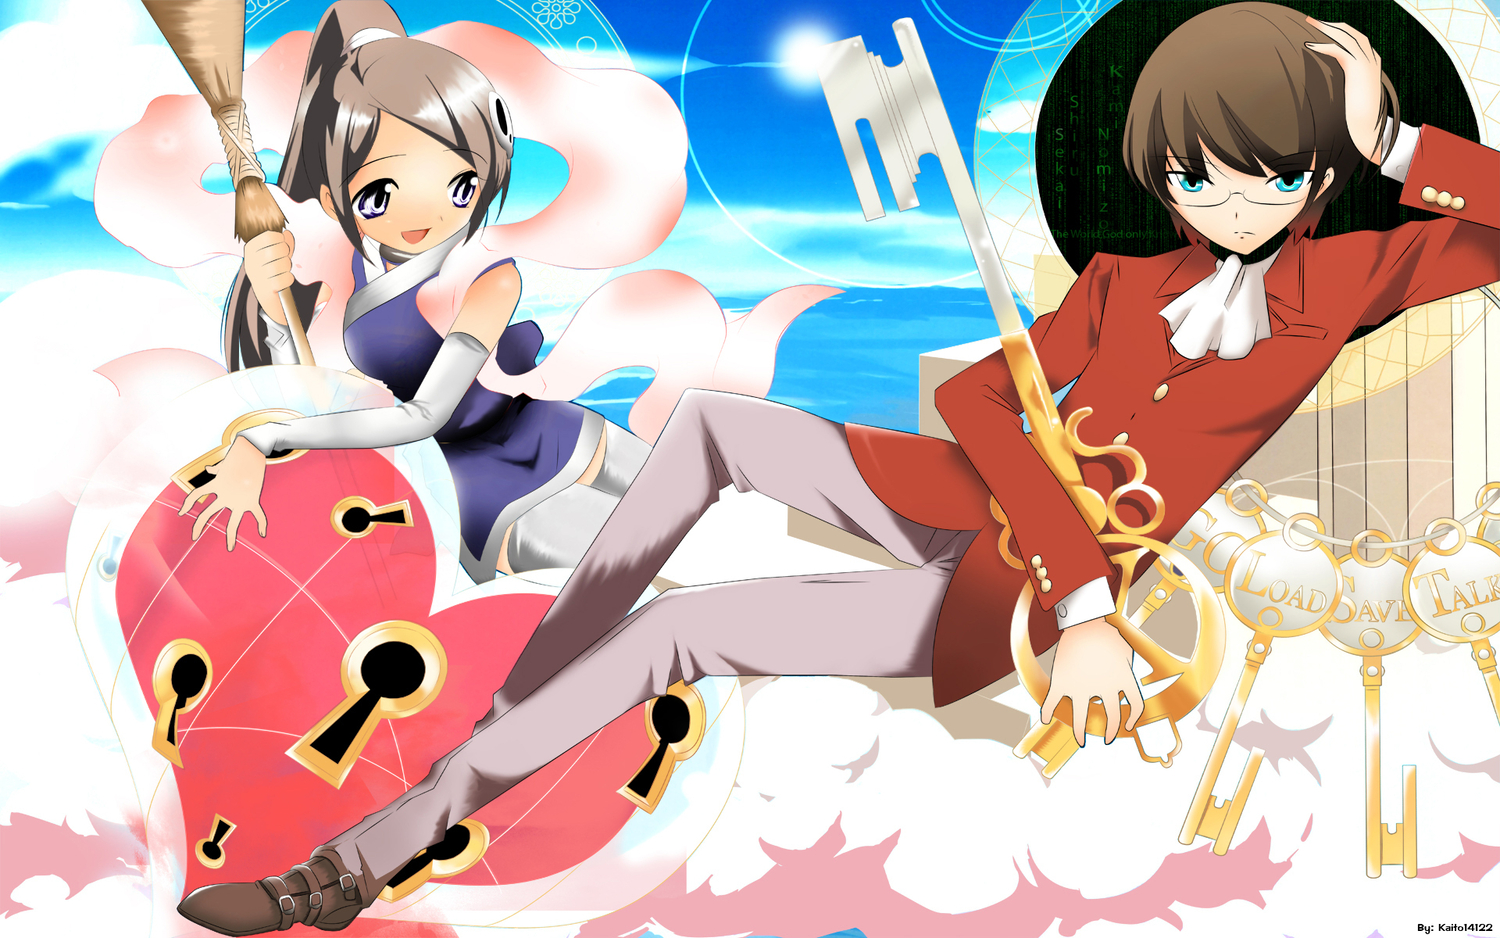 elsee_de_ruth_ima katsuragi_keima the_world_god_only_knows